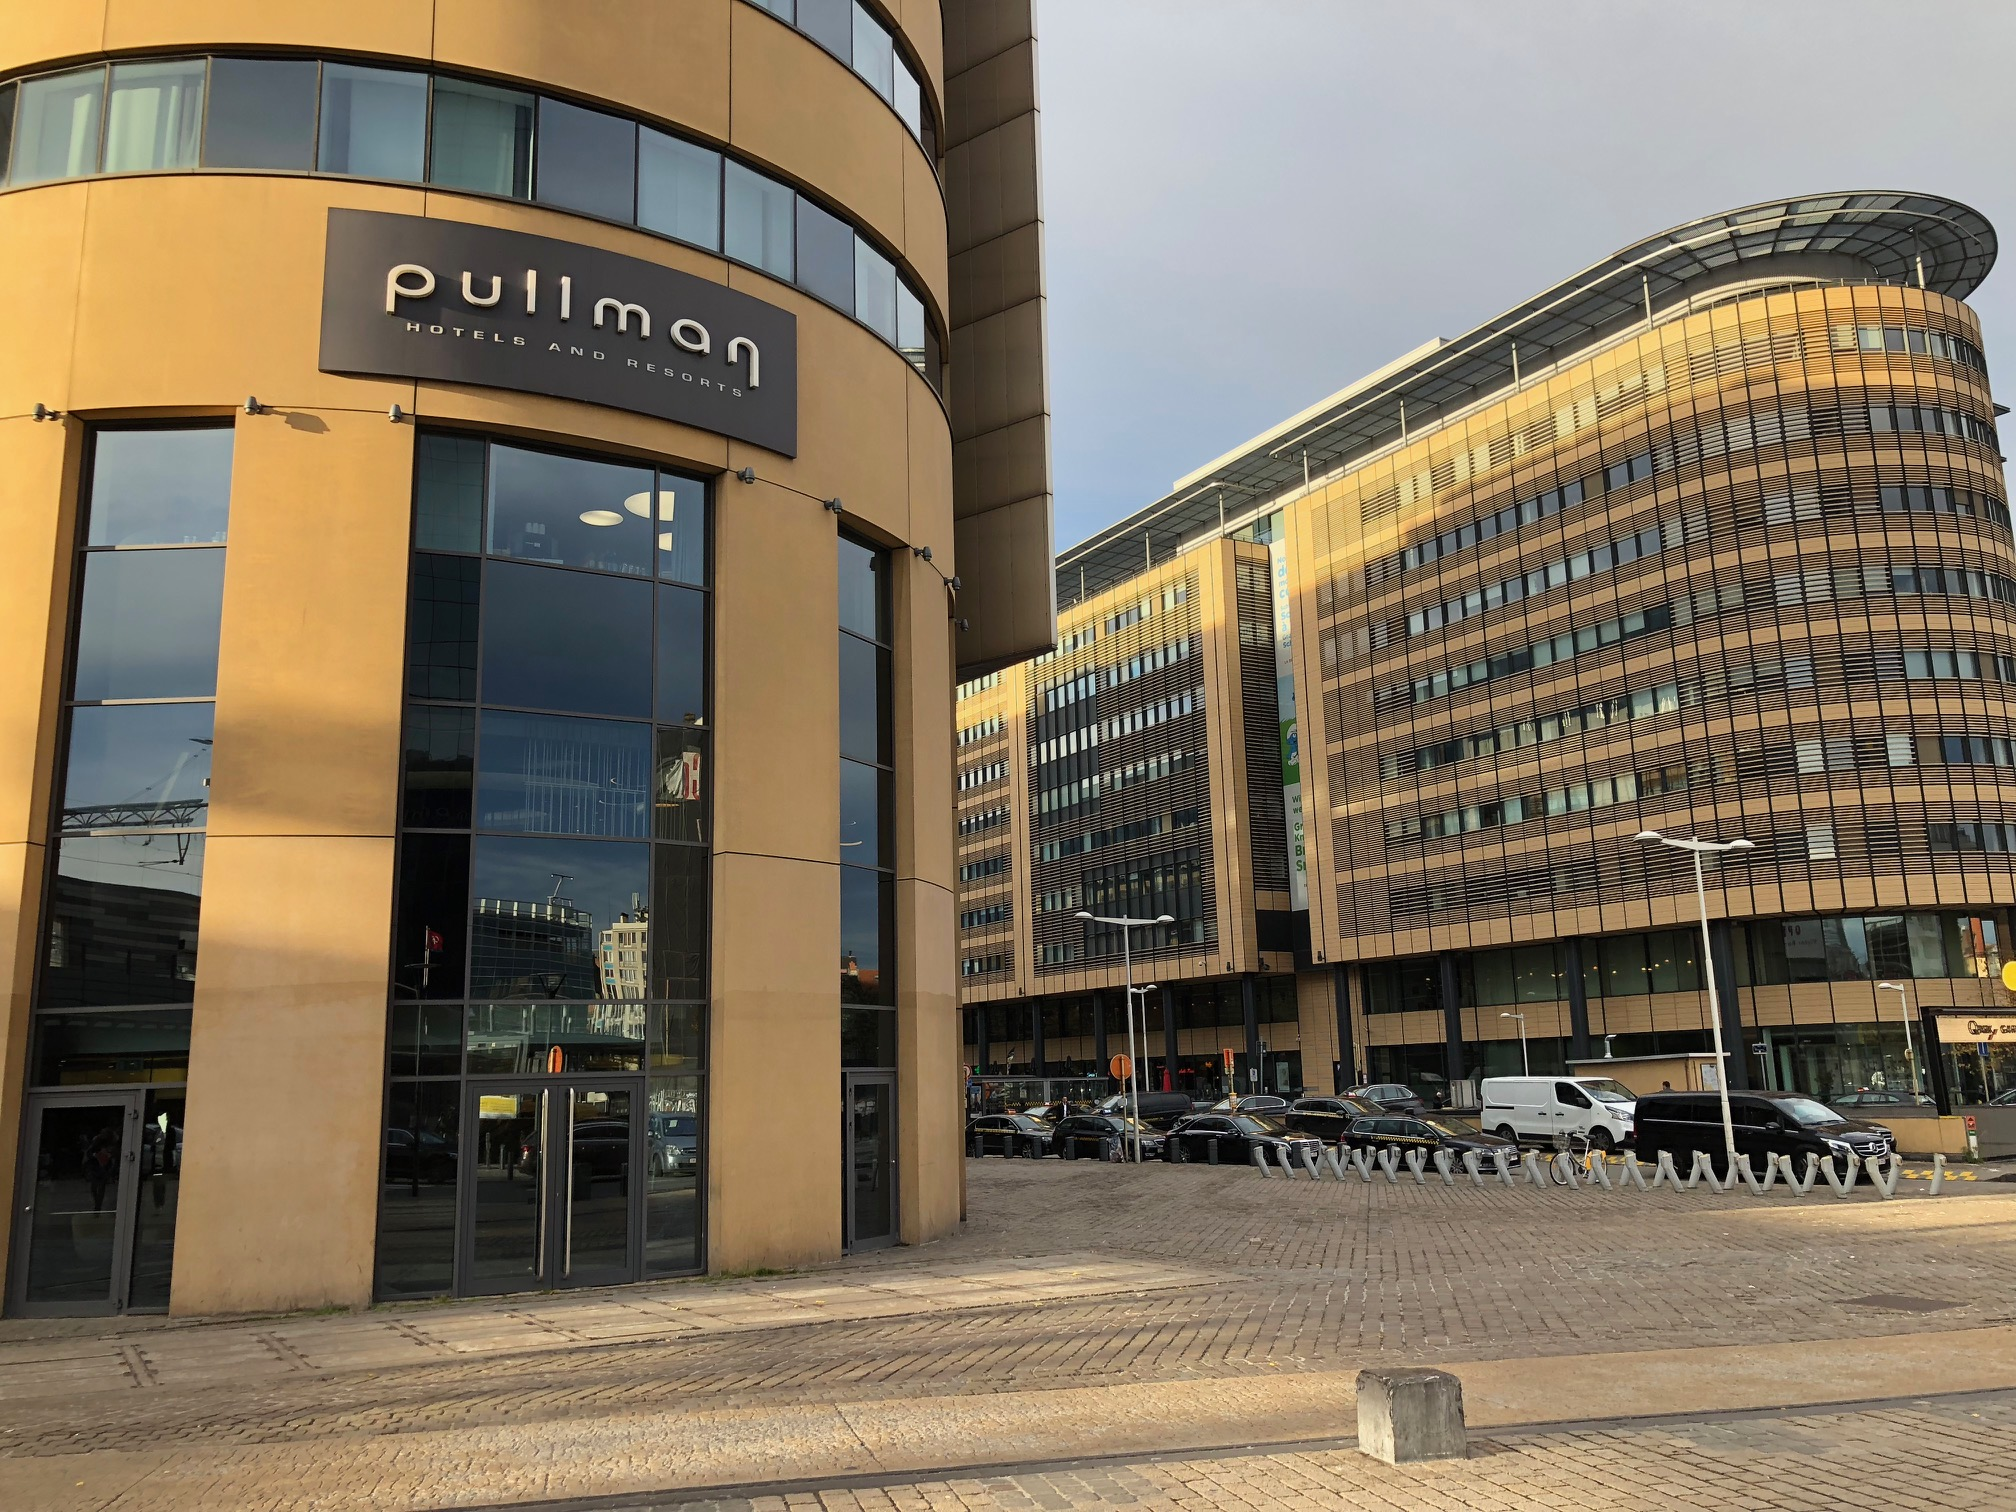 Pullman Hotel. Photo by Bjorn Ulfsson / CTIF News